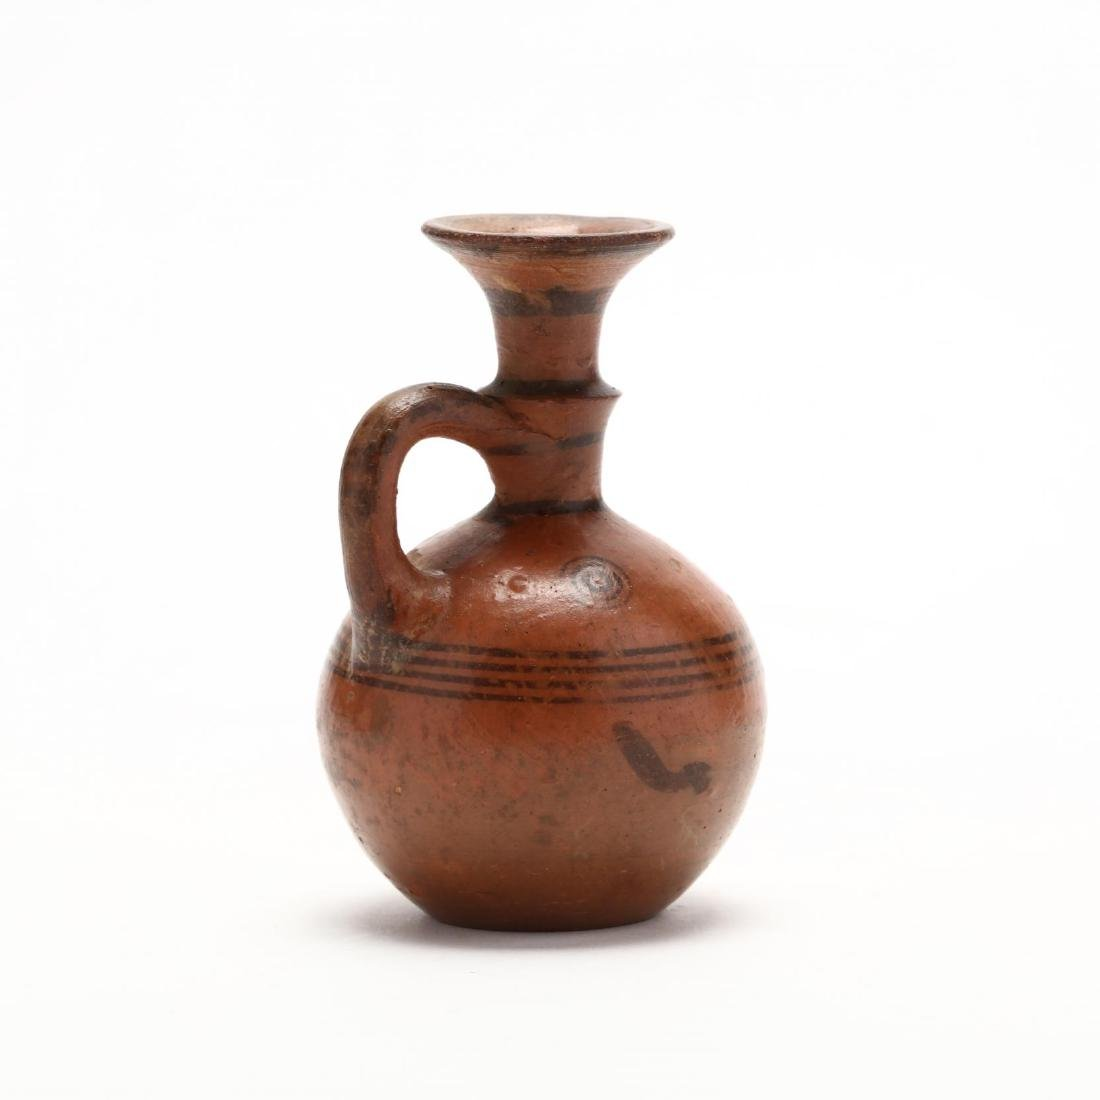 Cypriot Late Bronze Age Juglet - 4